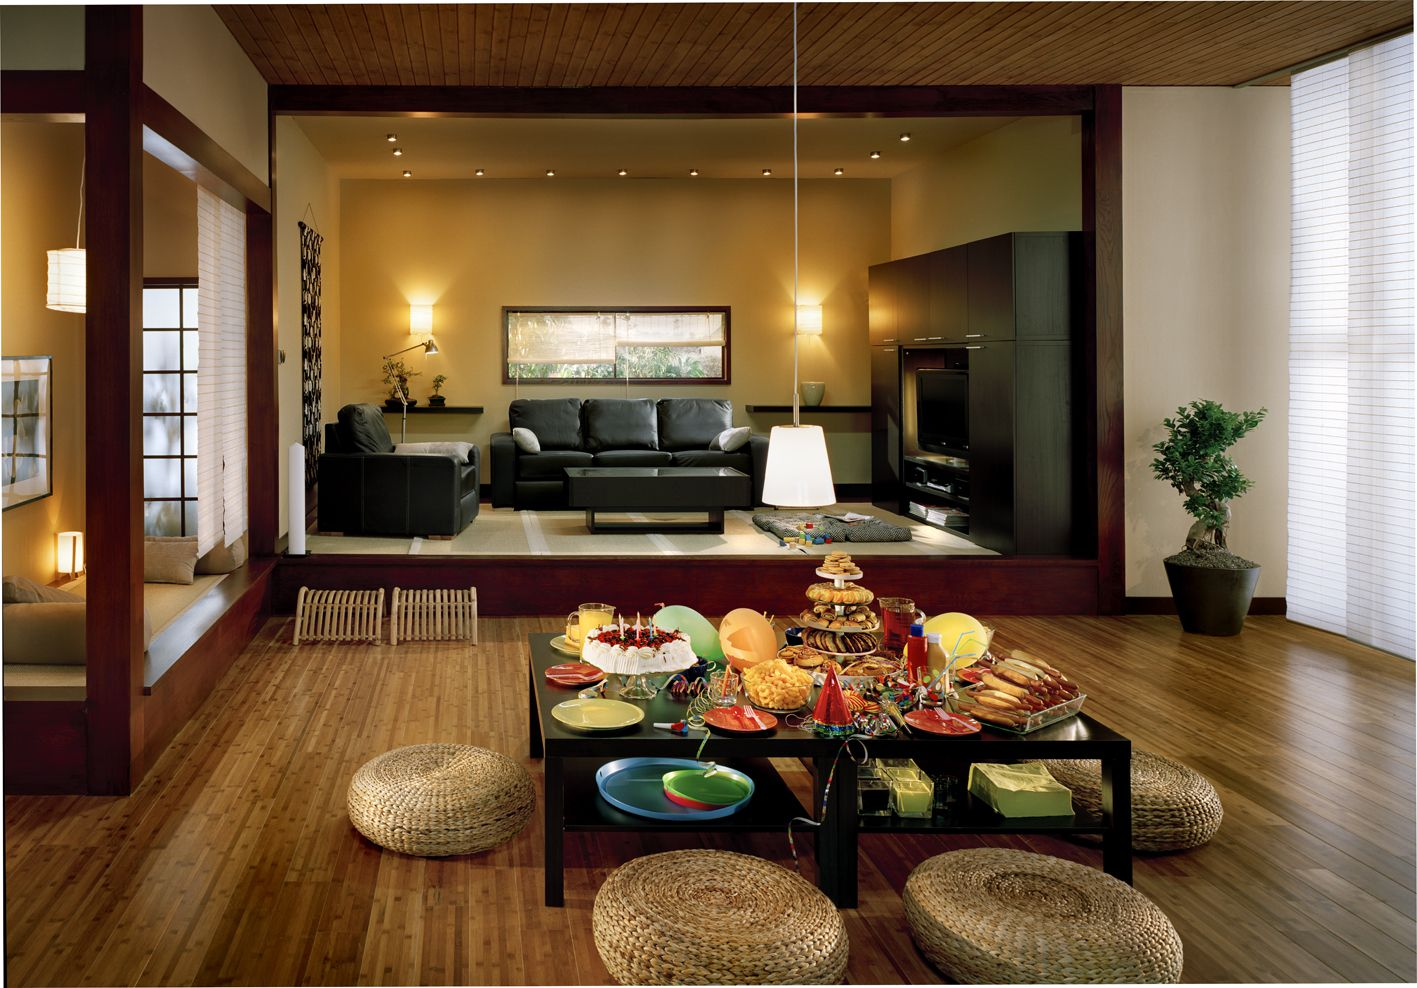 Adorable Design Of The Brown Wall Added With Rattan Chairs Added With Brown Flooring As The Living Room Decoration